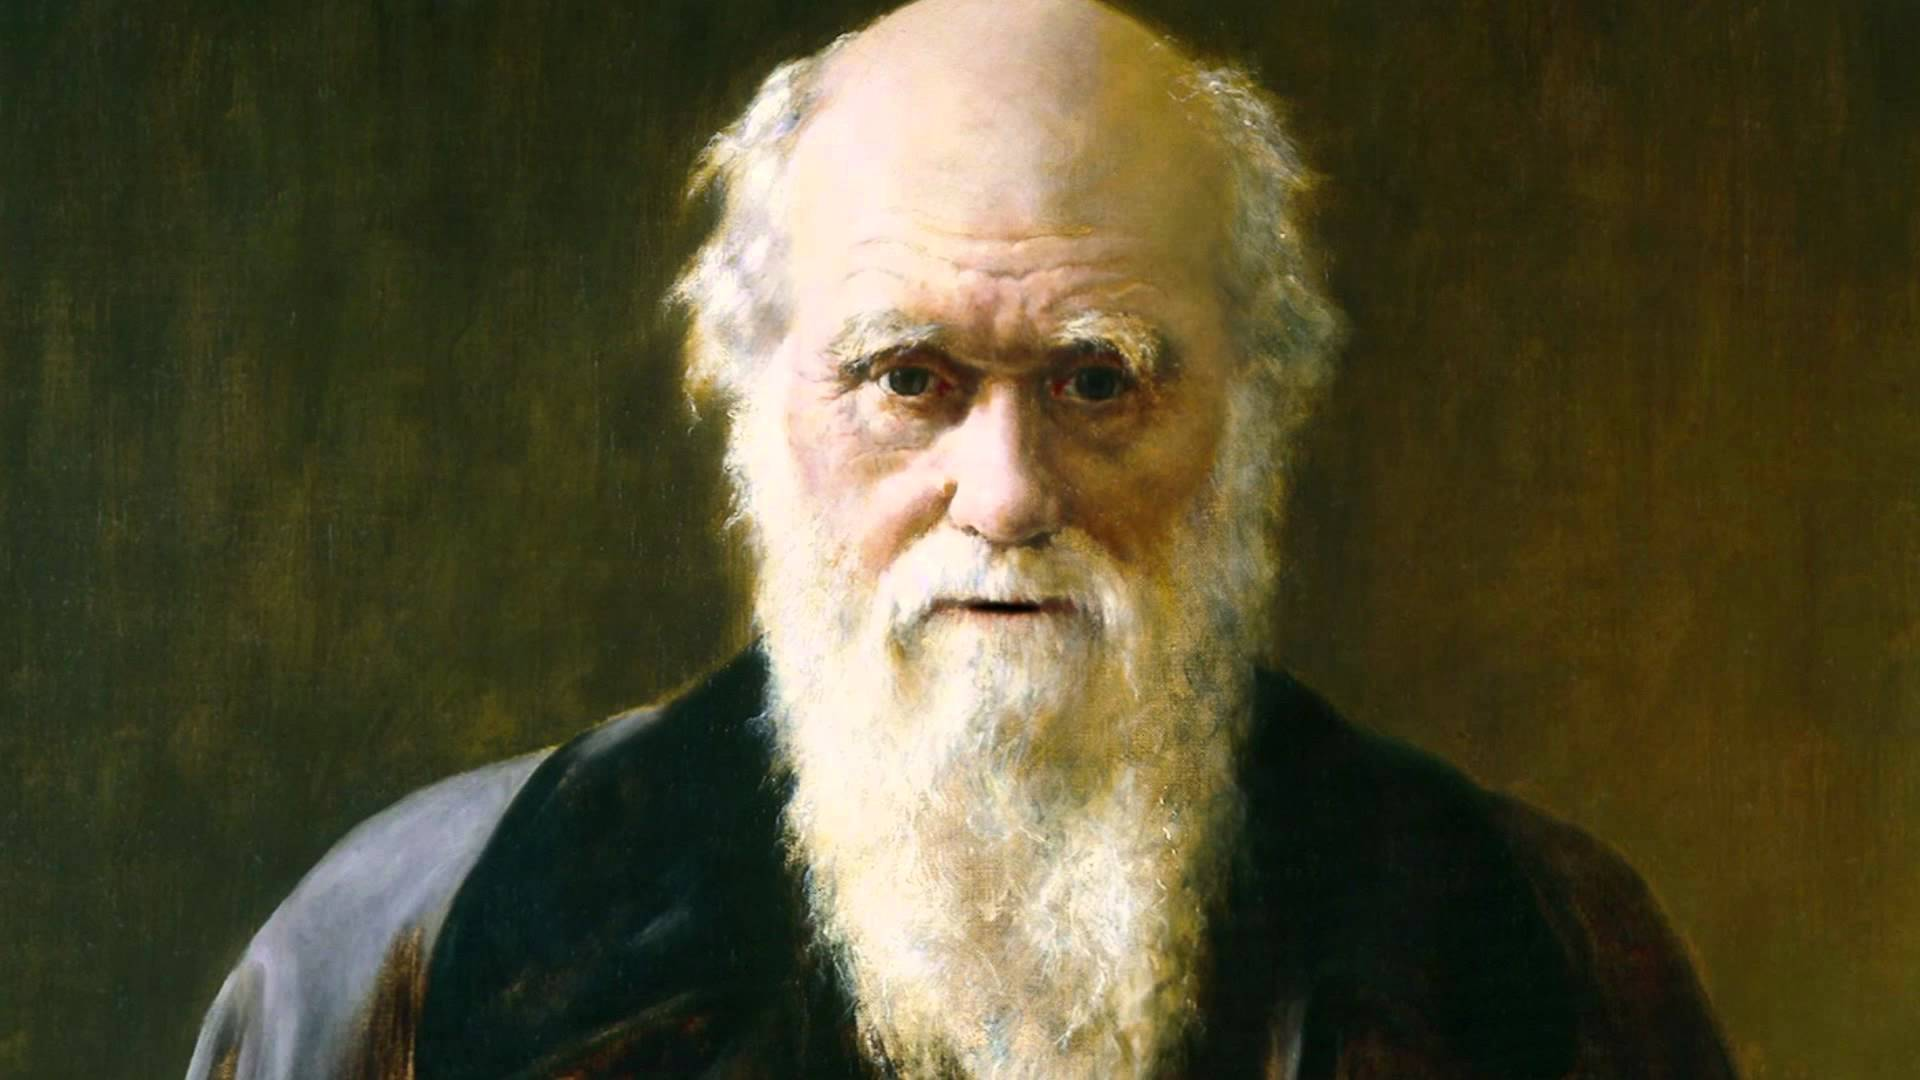 Read <i>The origin of species</i> by Charles Darwin. Its great, its free, and it is nothing but alt-right